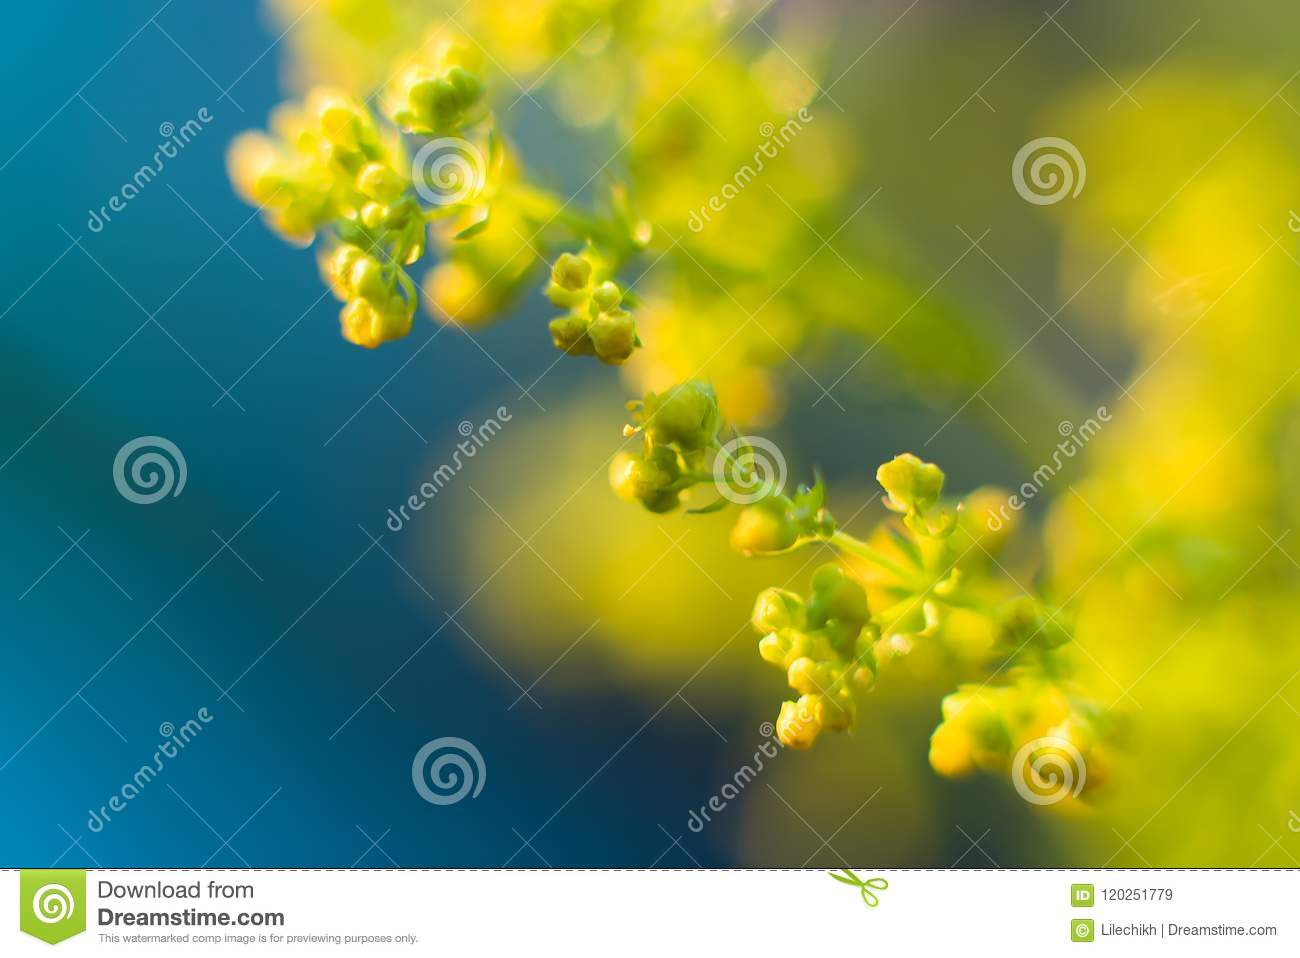 Small Yellow Flowers On A Blurred Background Field Flowers Stock